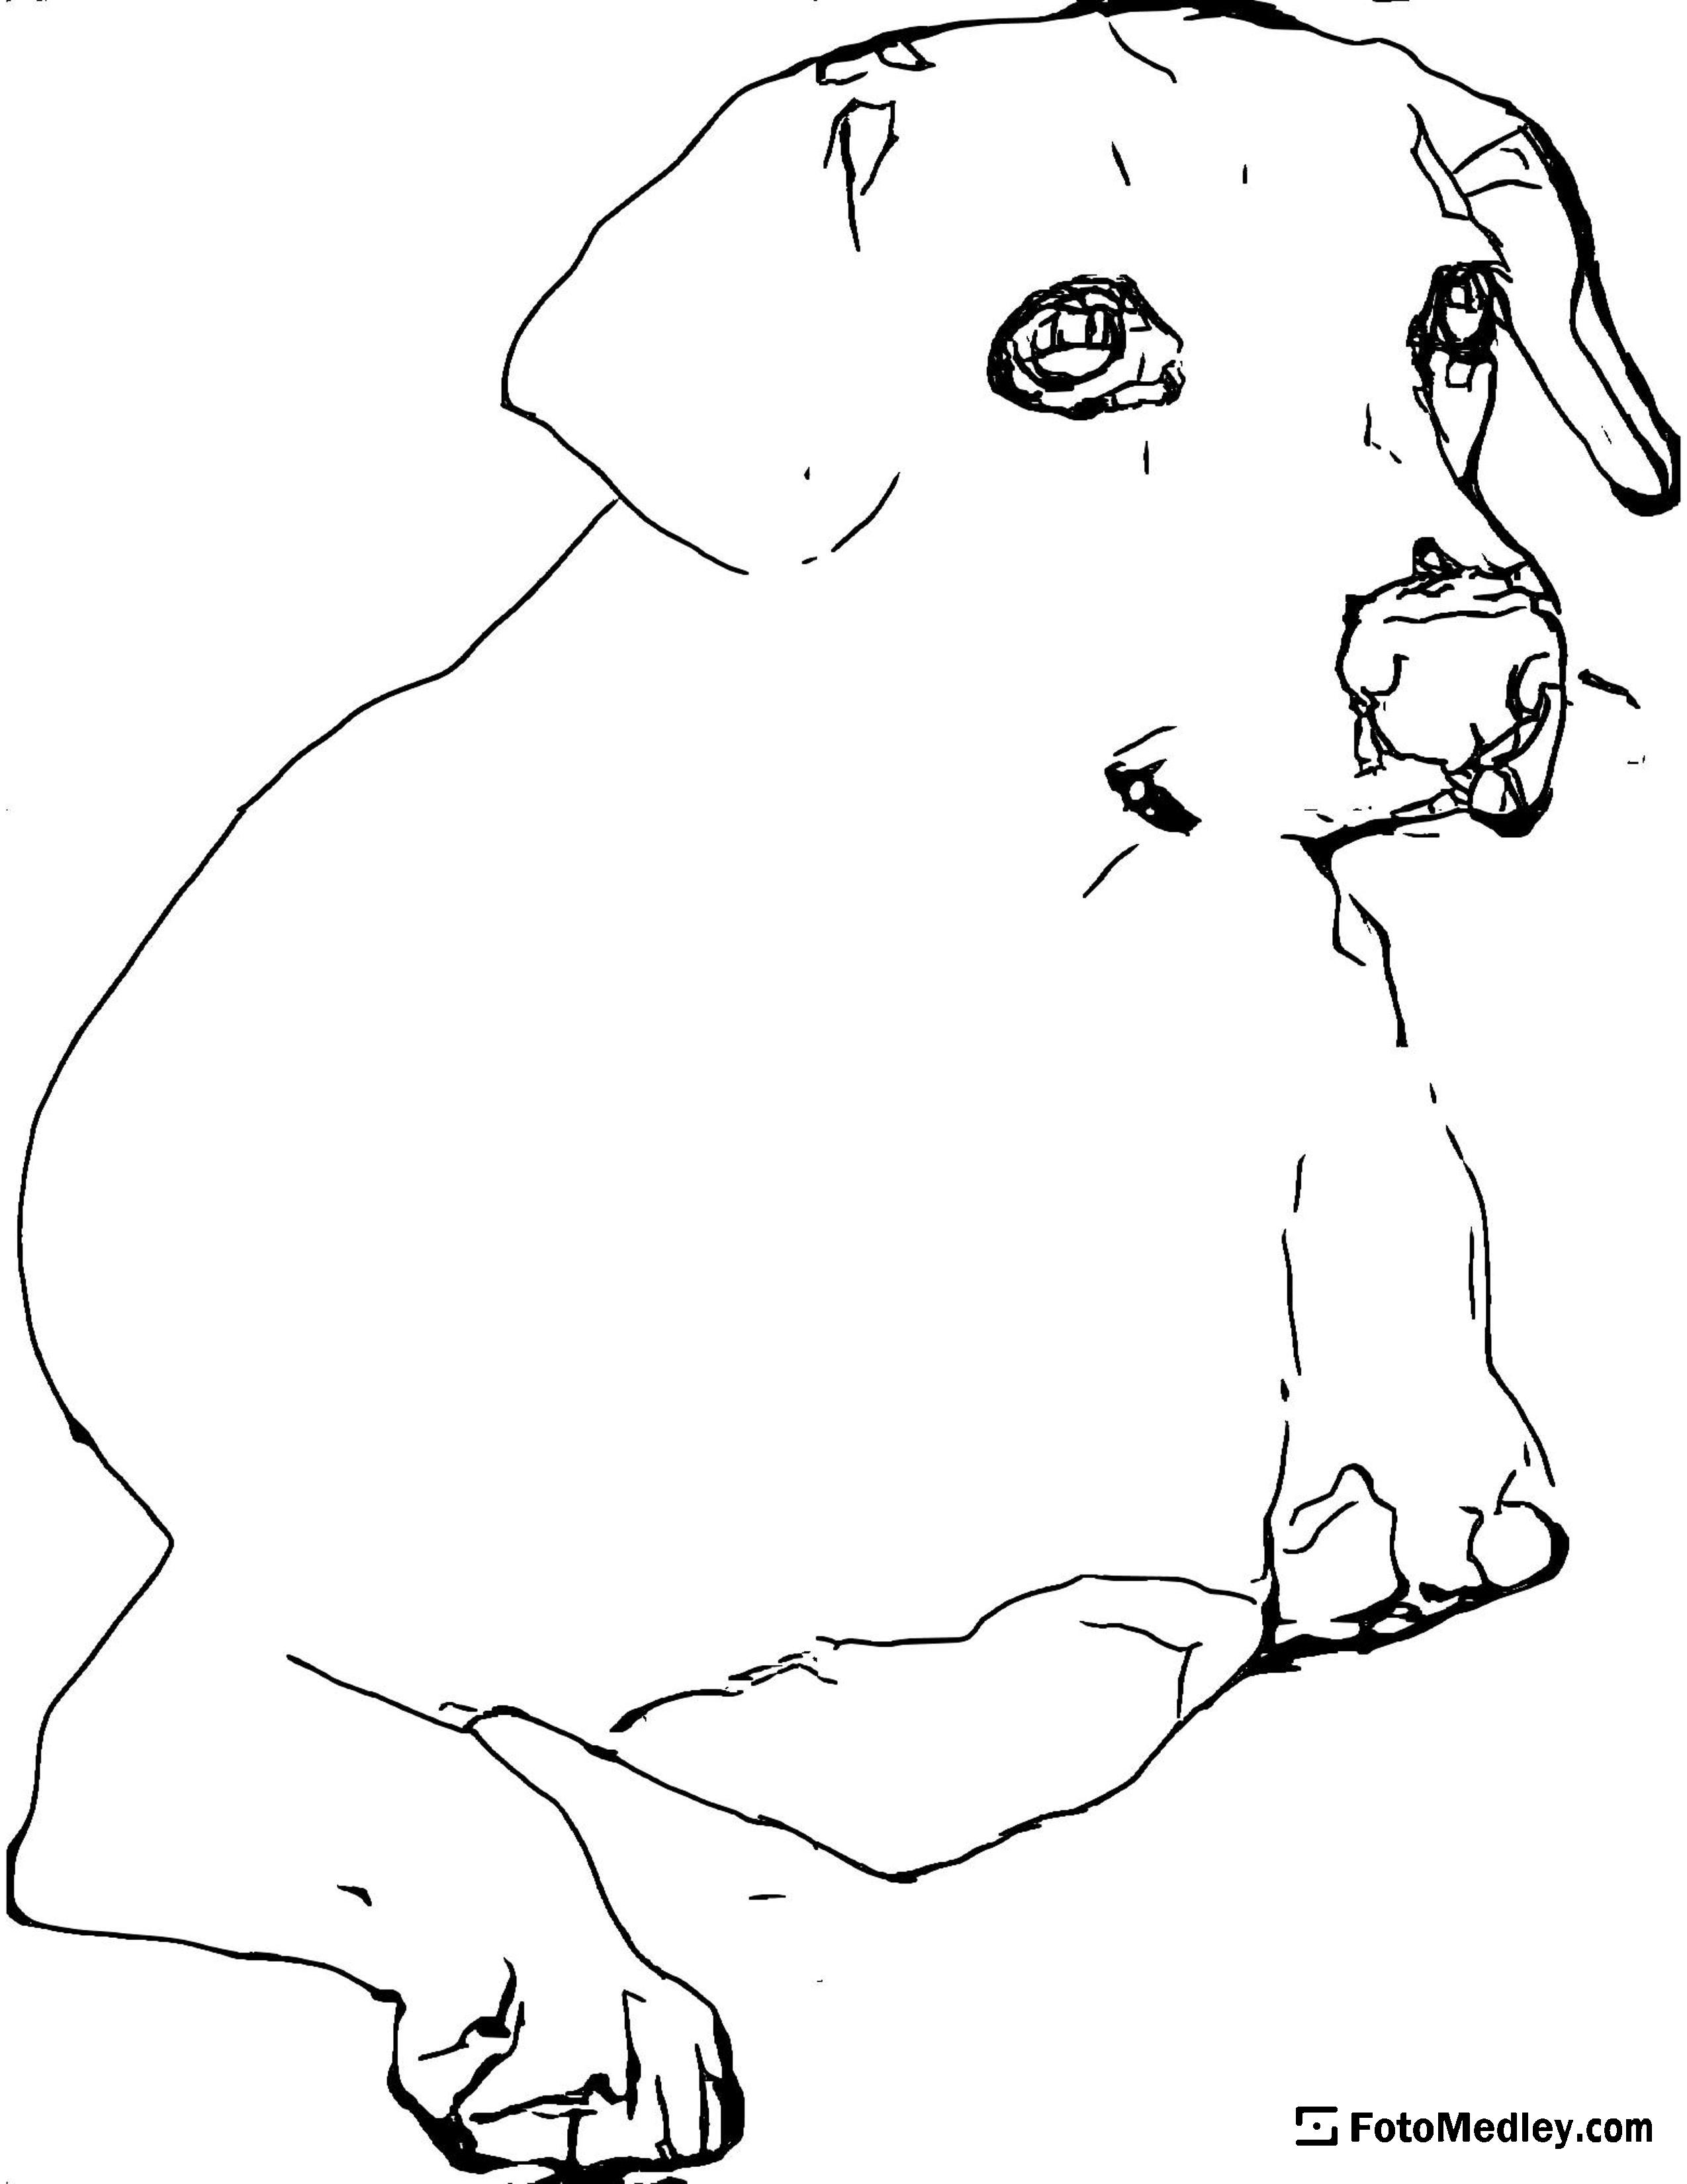 A coloring page of a a small dog relaxing.